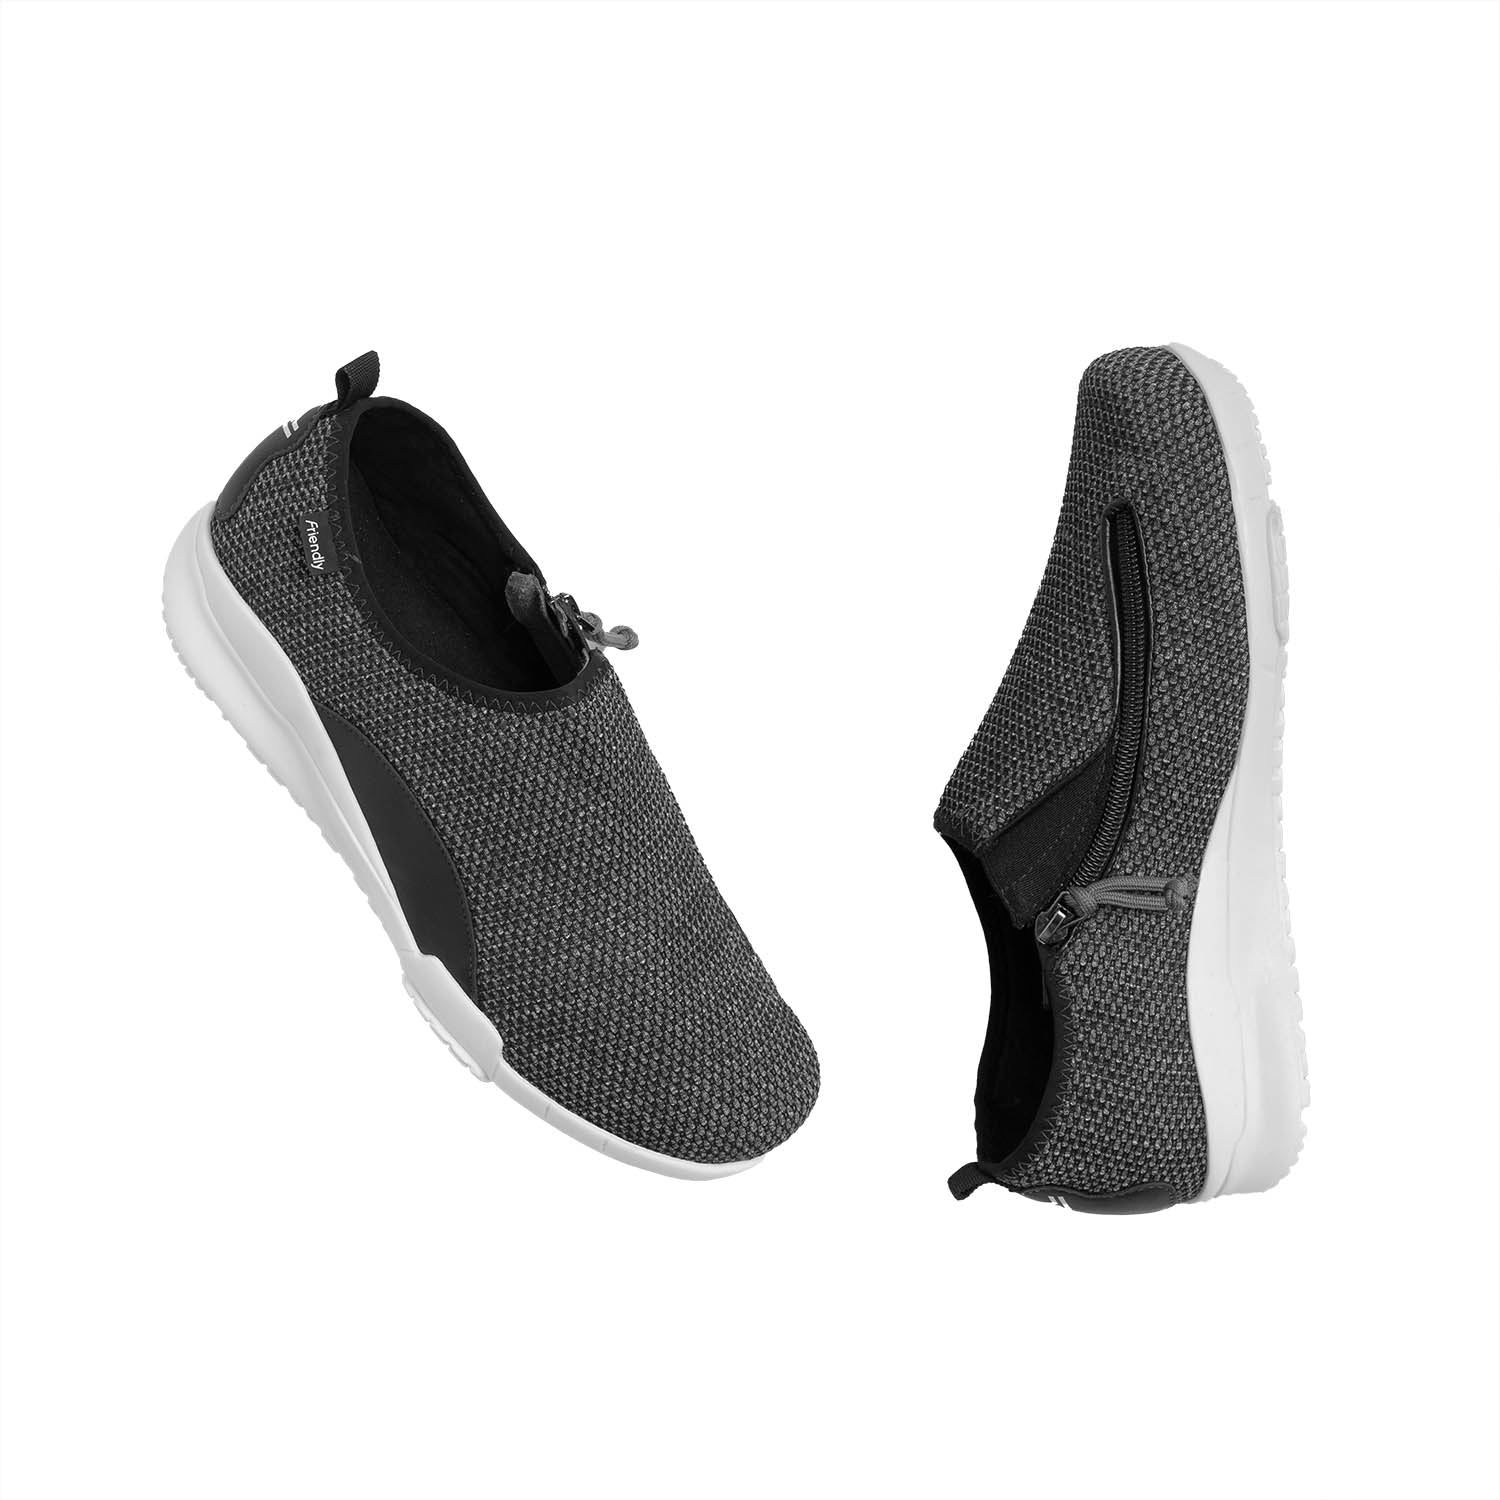 Men's Friendly Flex / Charcoal Fabric Shoe